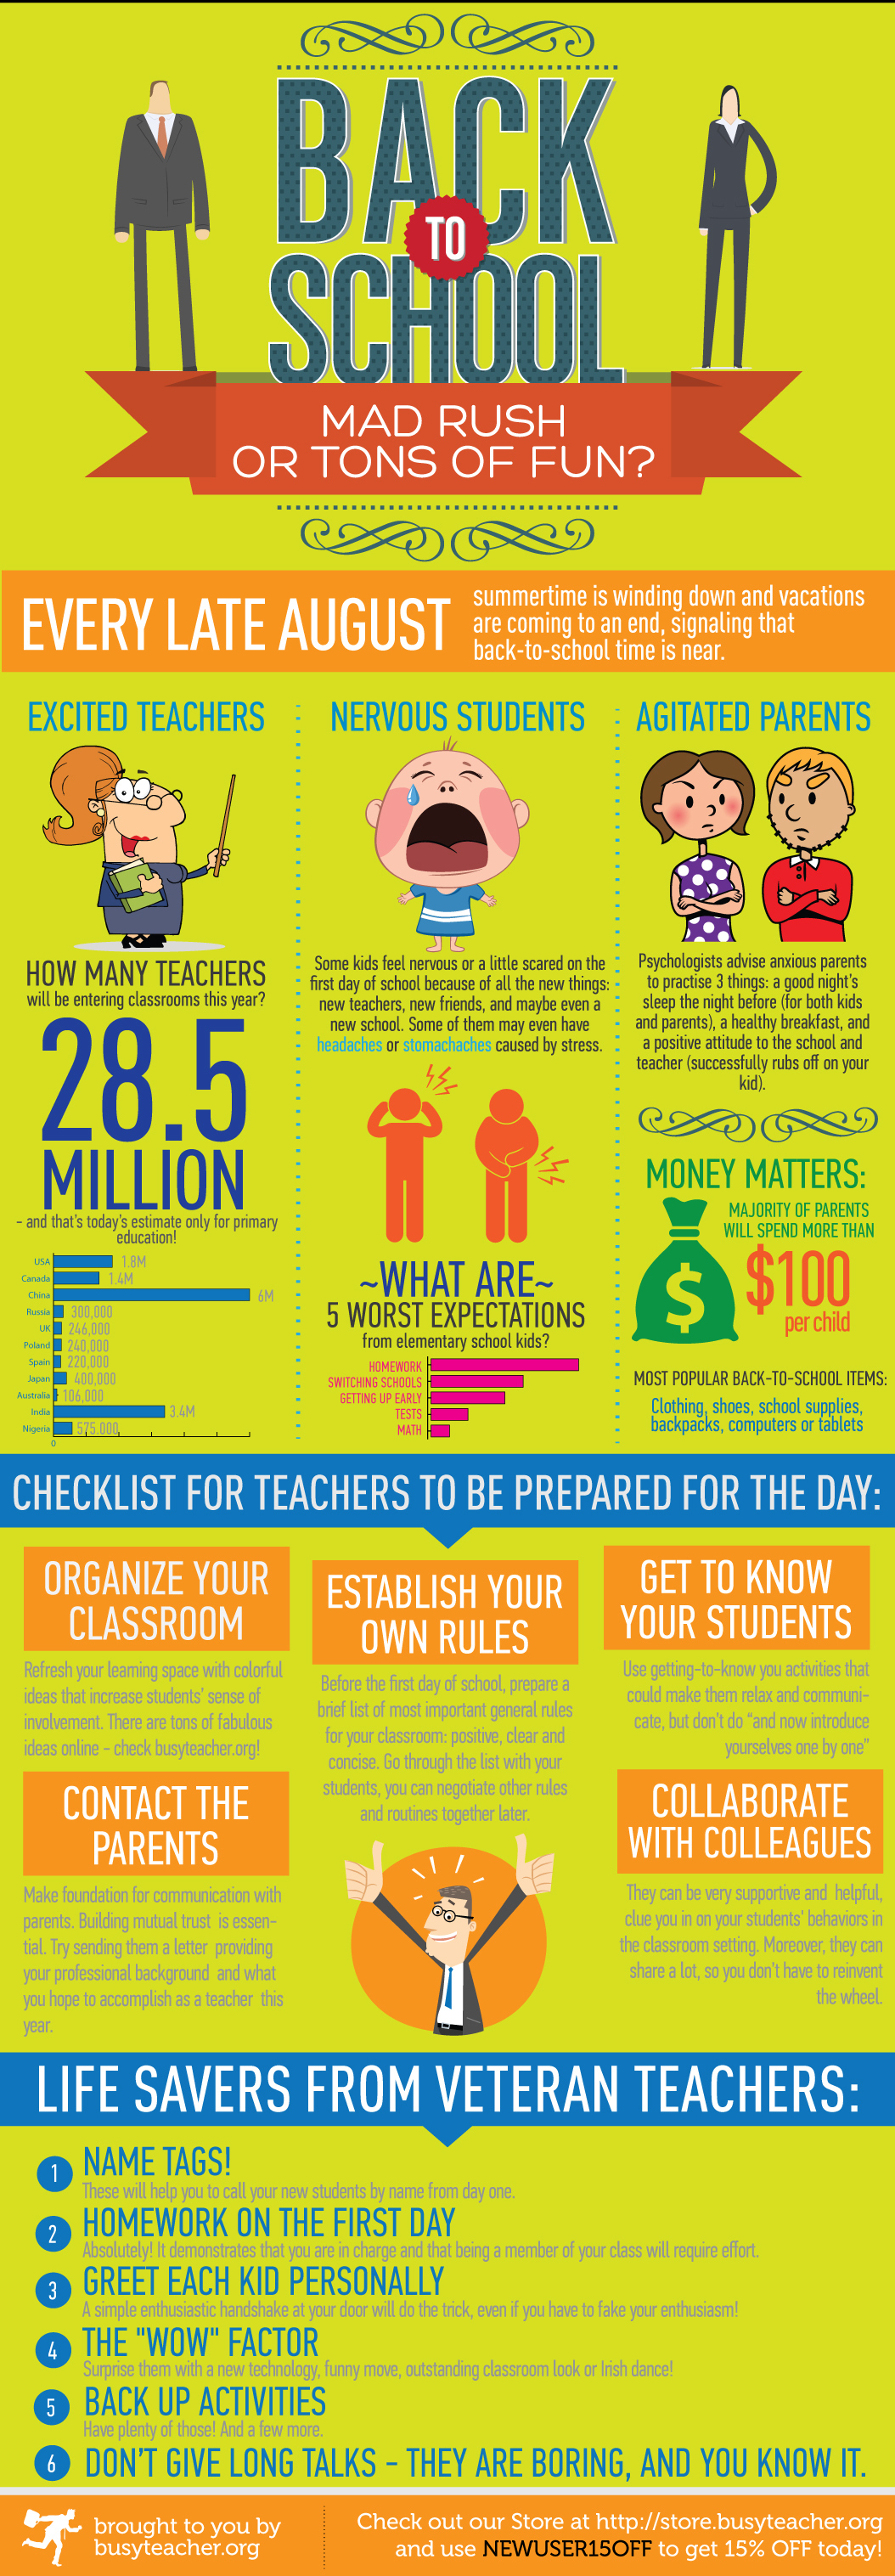 66 Free Classroom Posters - Free Printable Educational Posters